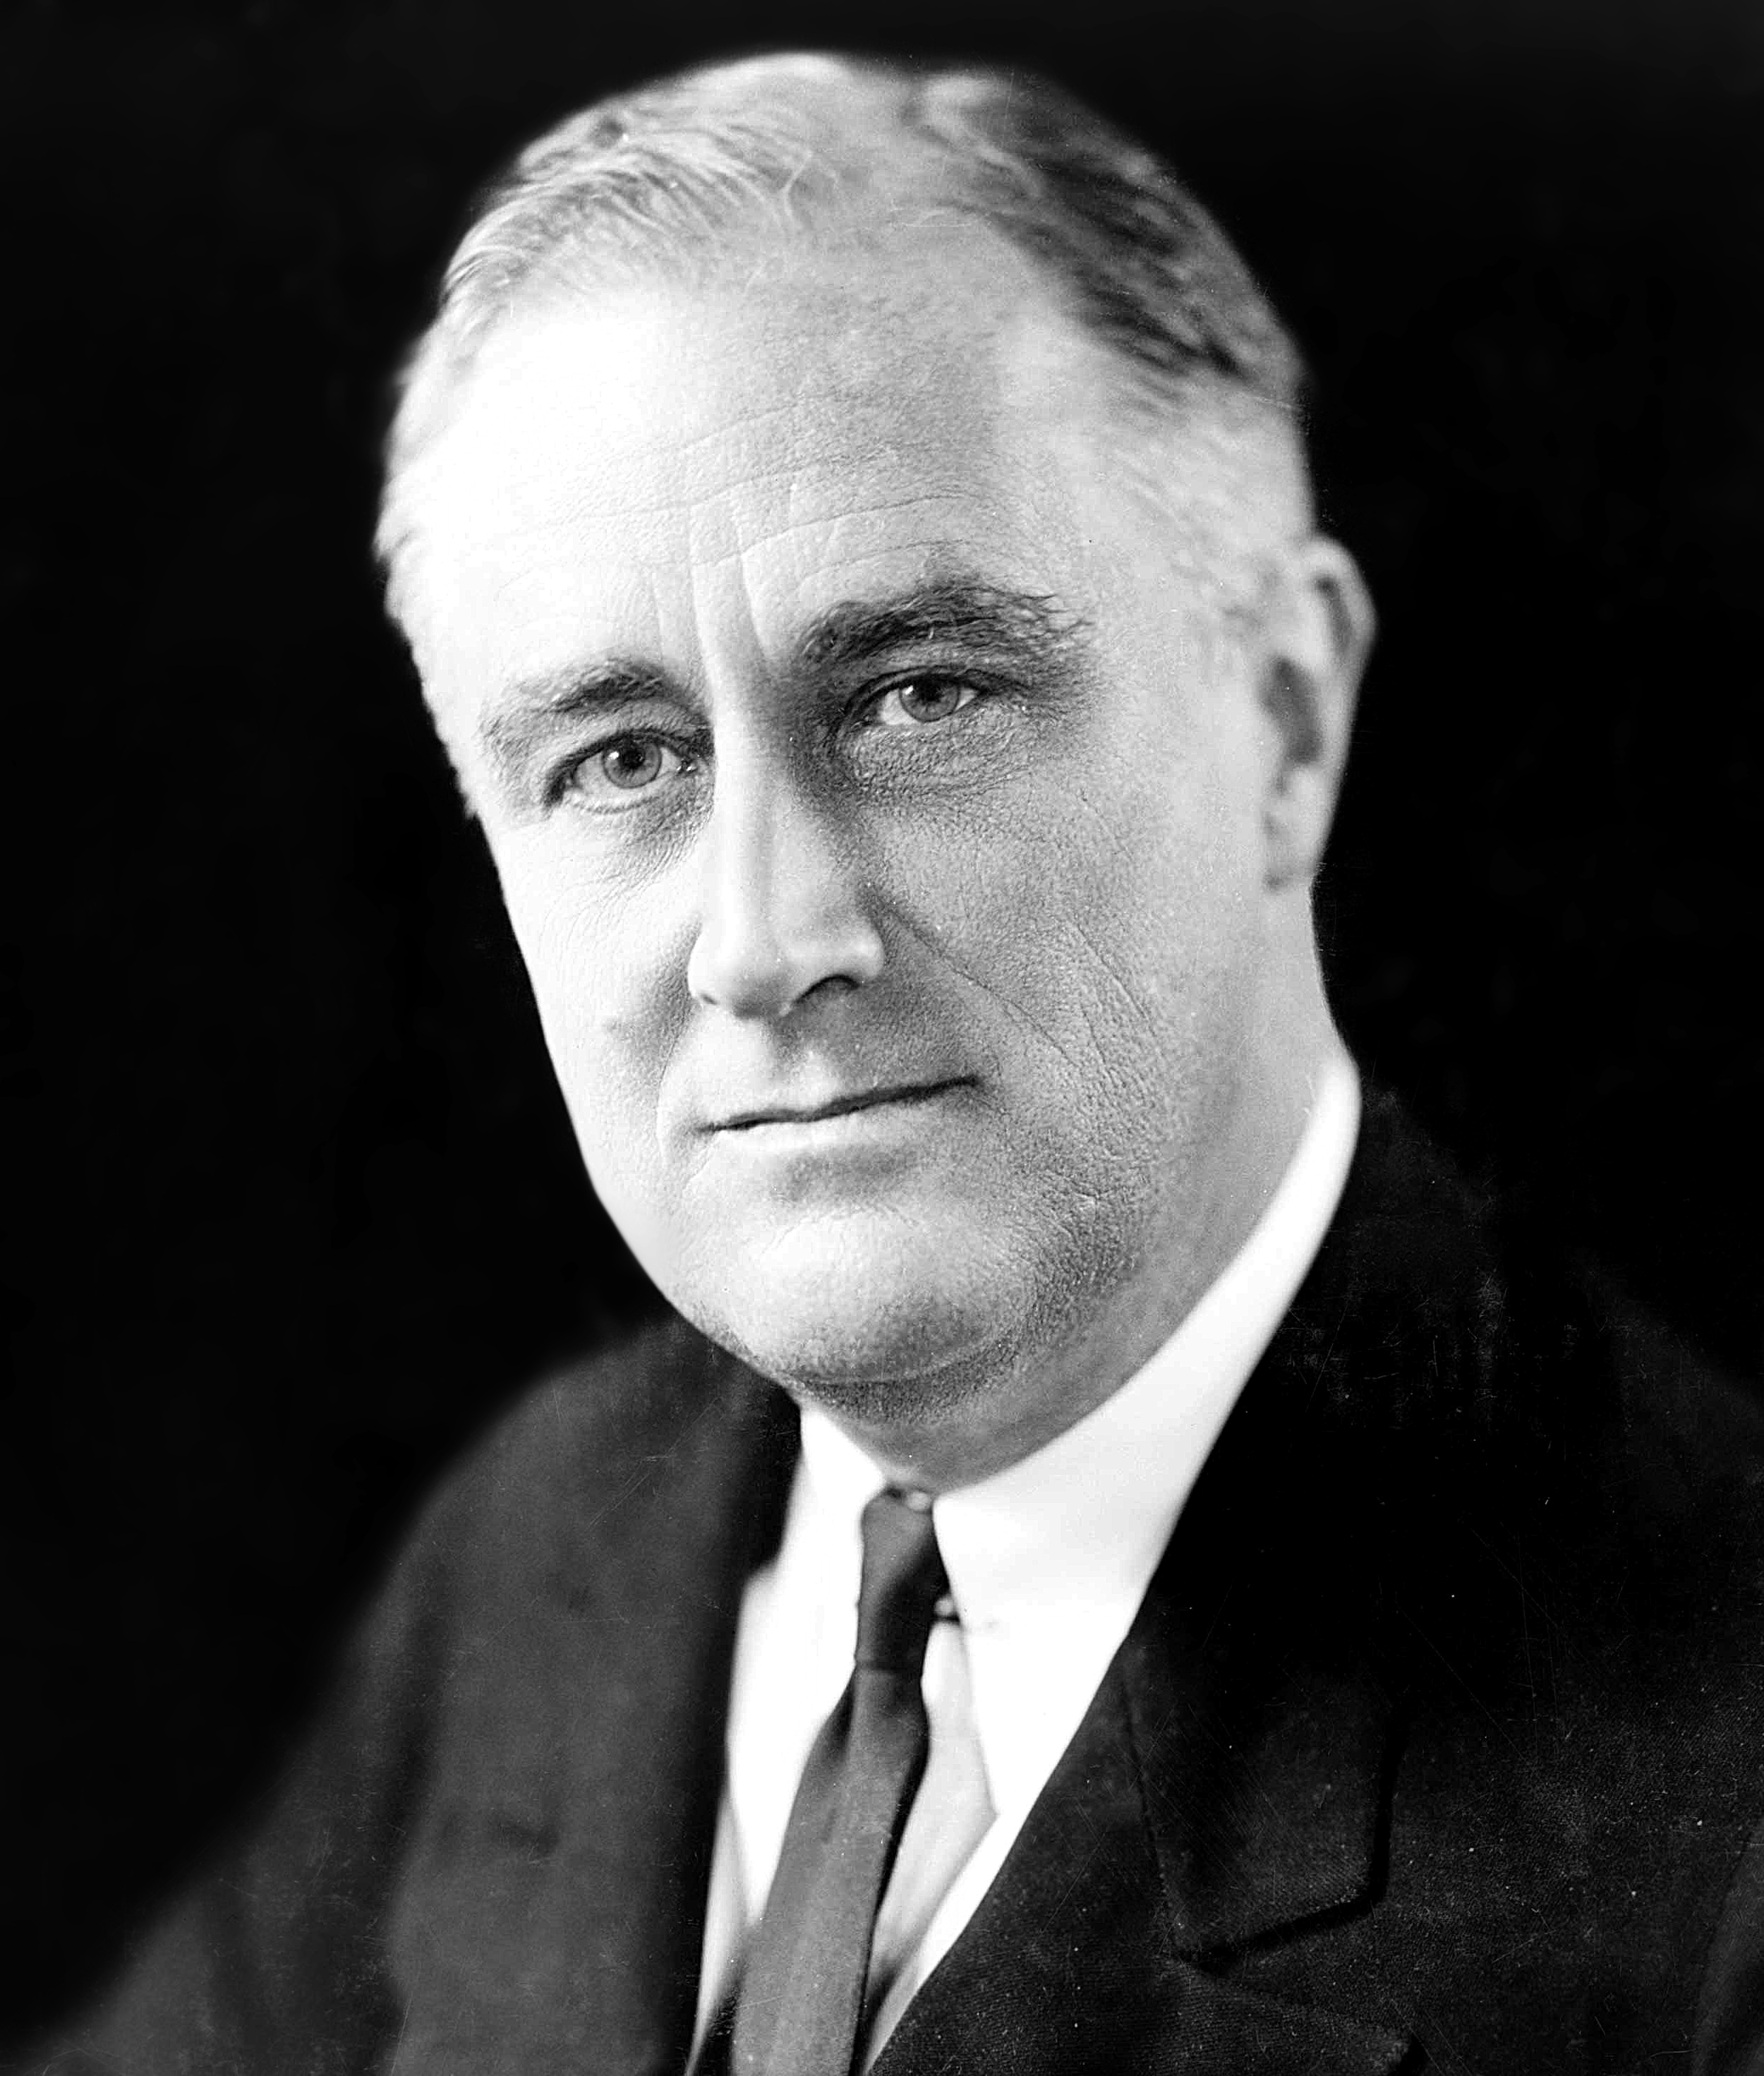 Franklin D. Roosevelt, 32nd President